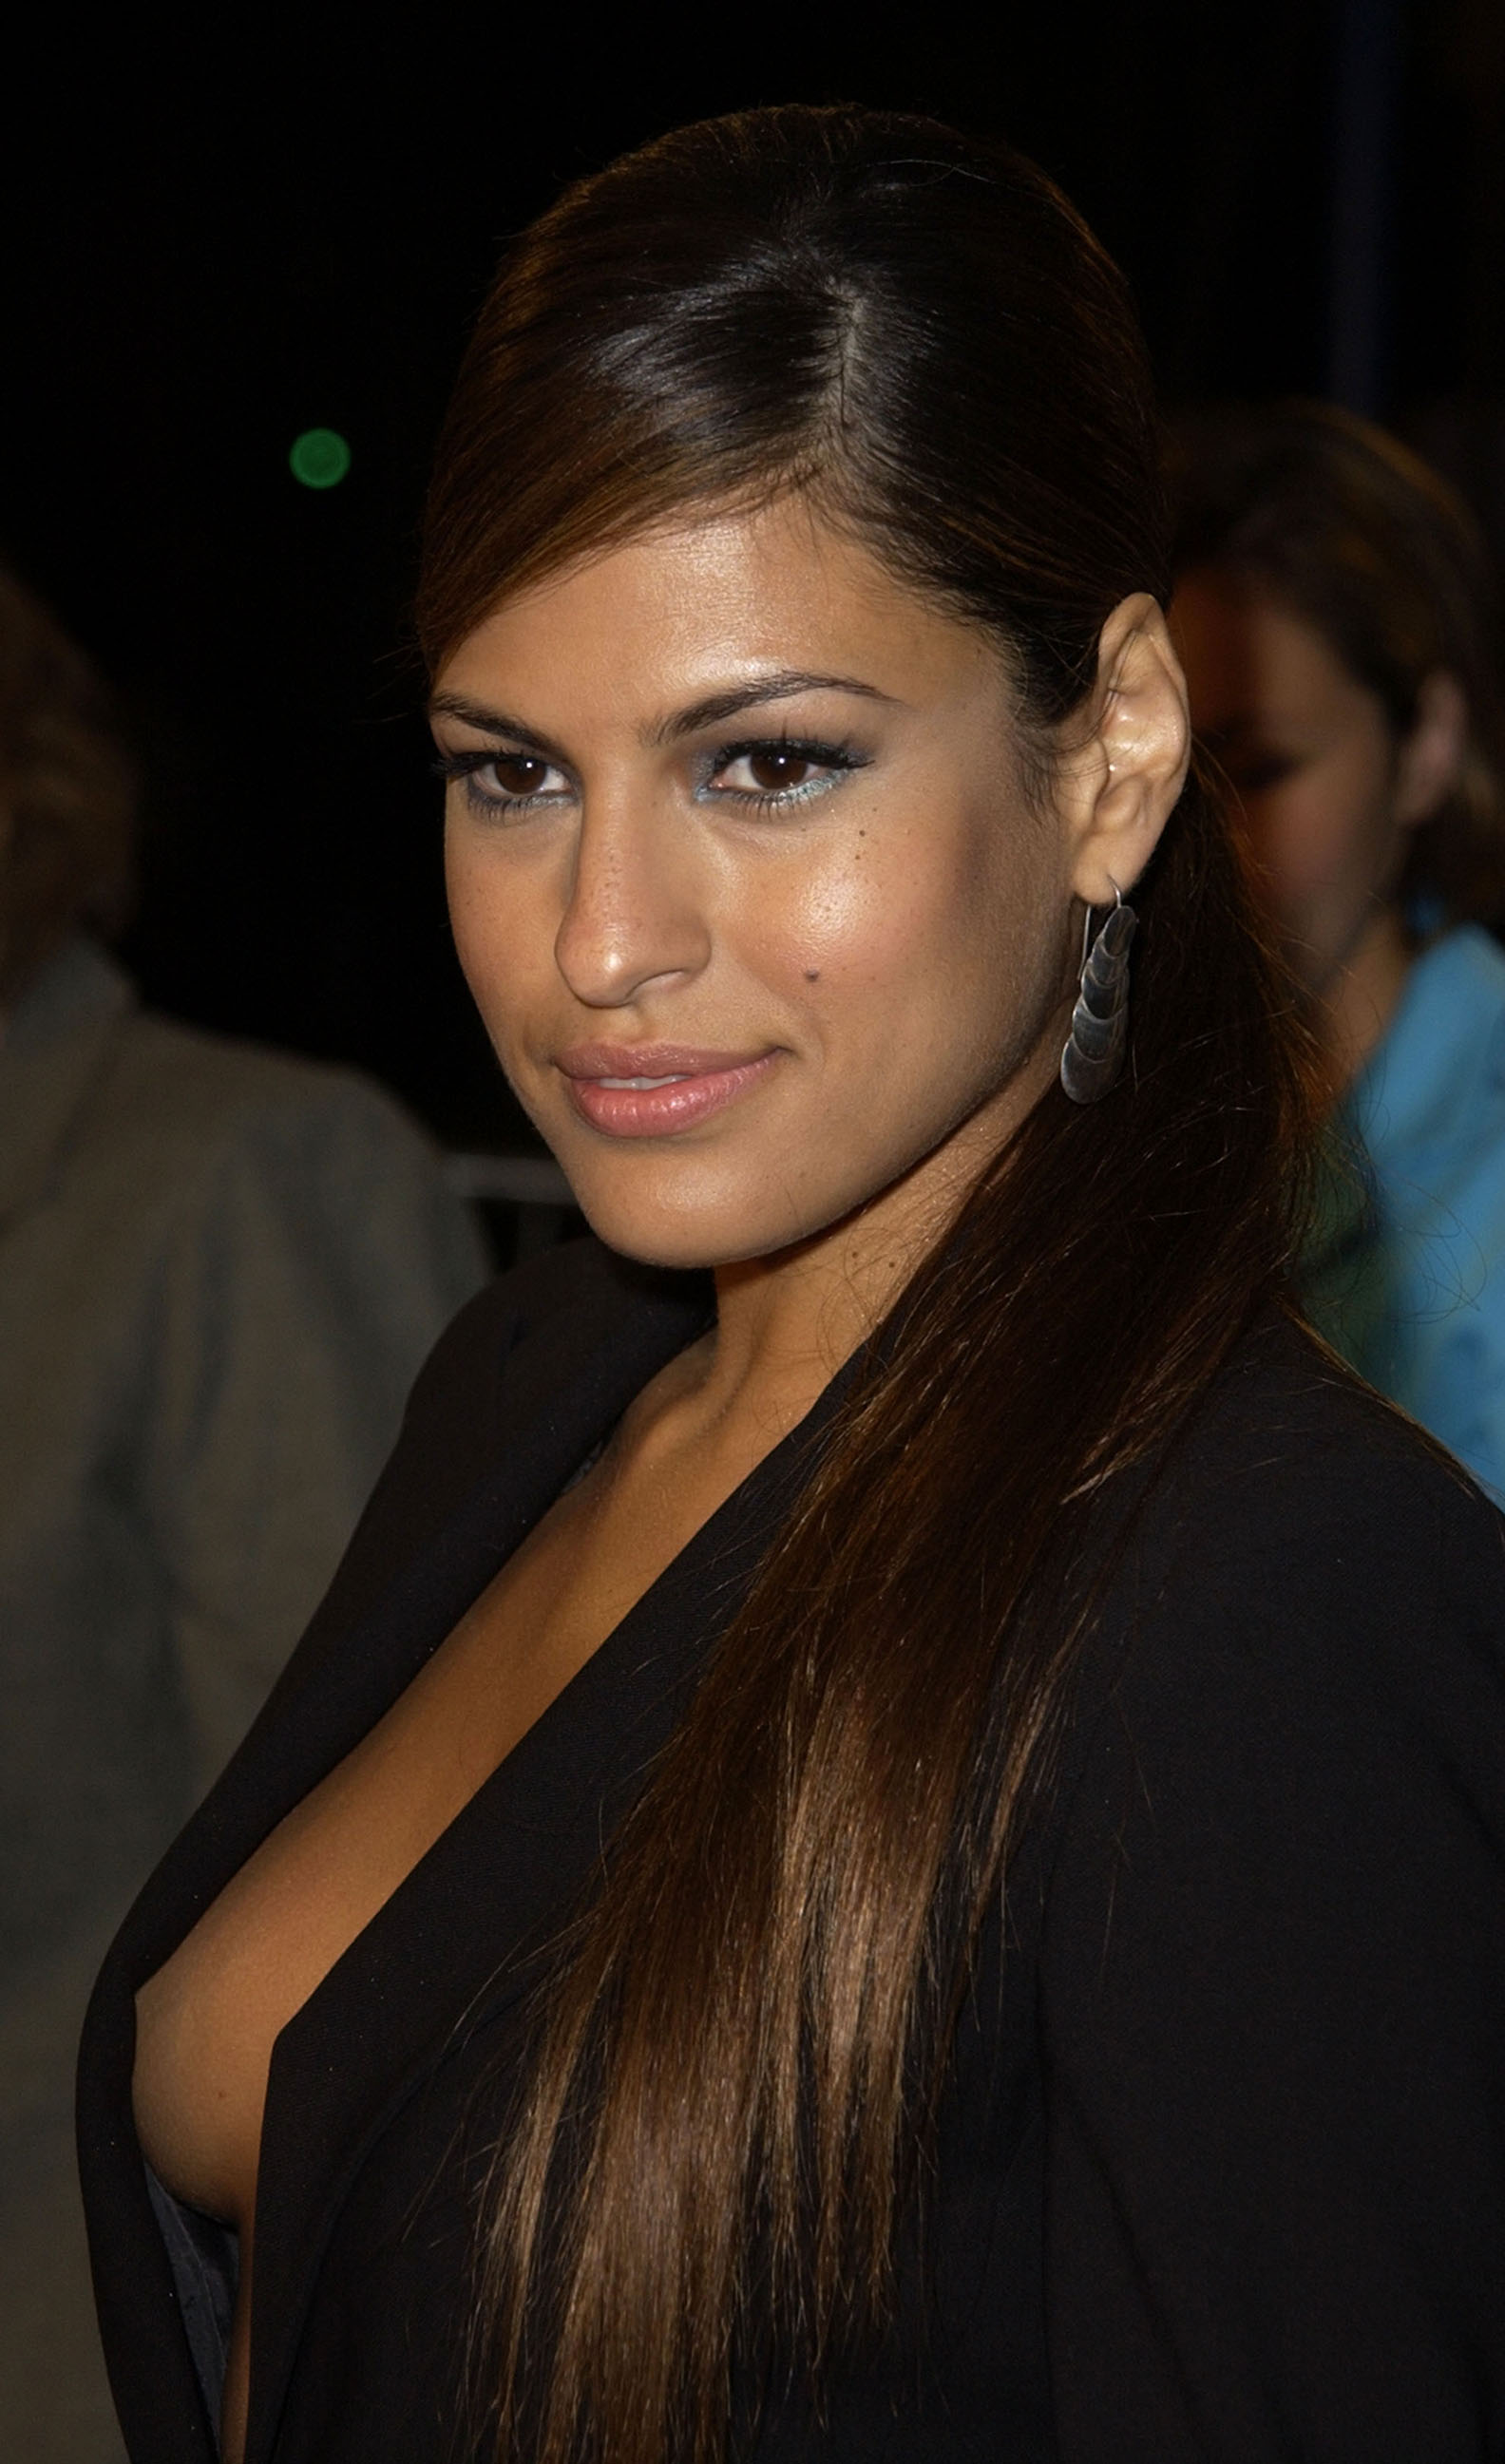 Eva Mendes Actress - Wallpaper